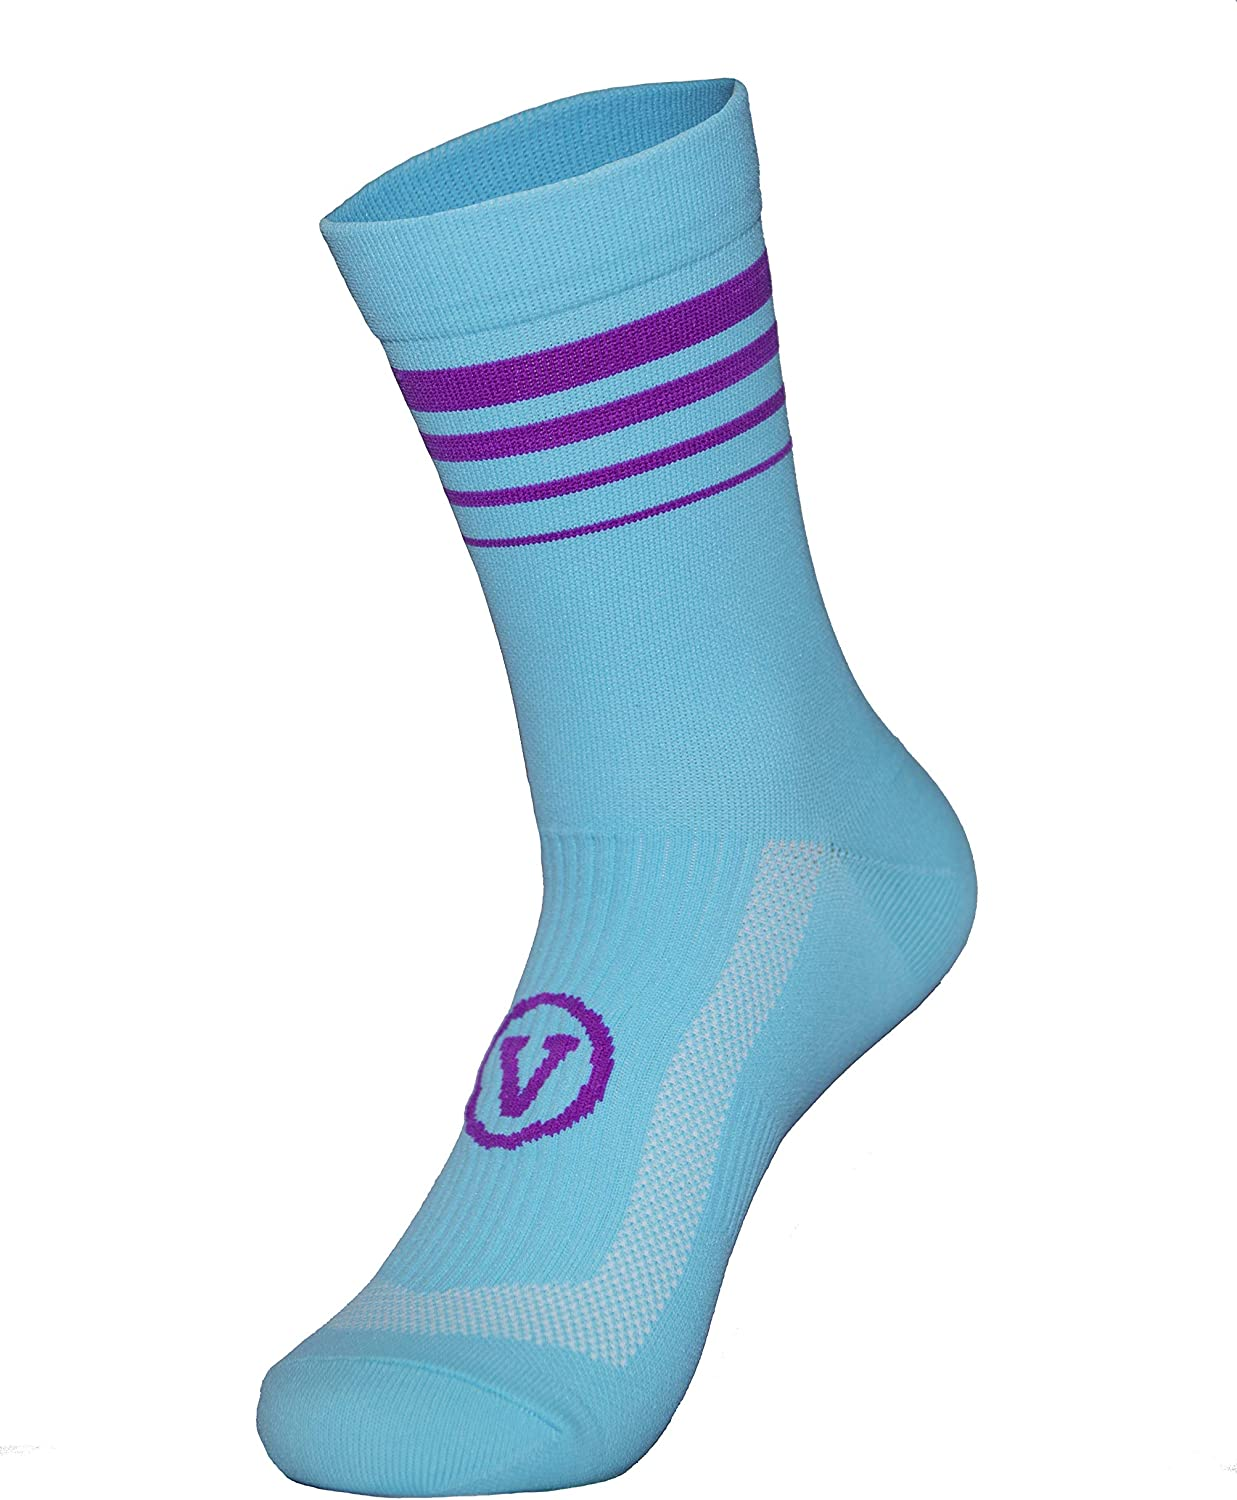 Fast Drying Breathable Cycling Socks SeeMees Mens Runninng compression Ankle Support